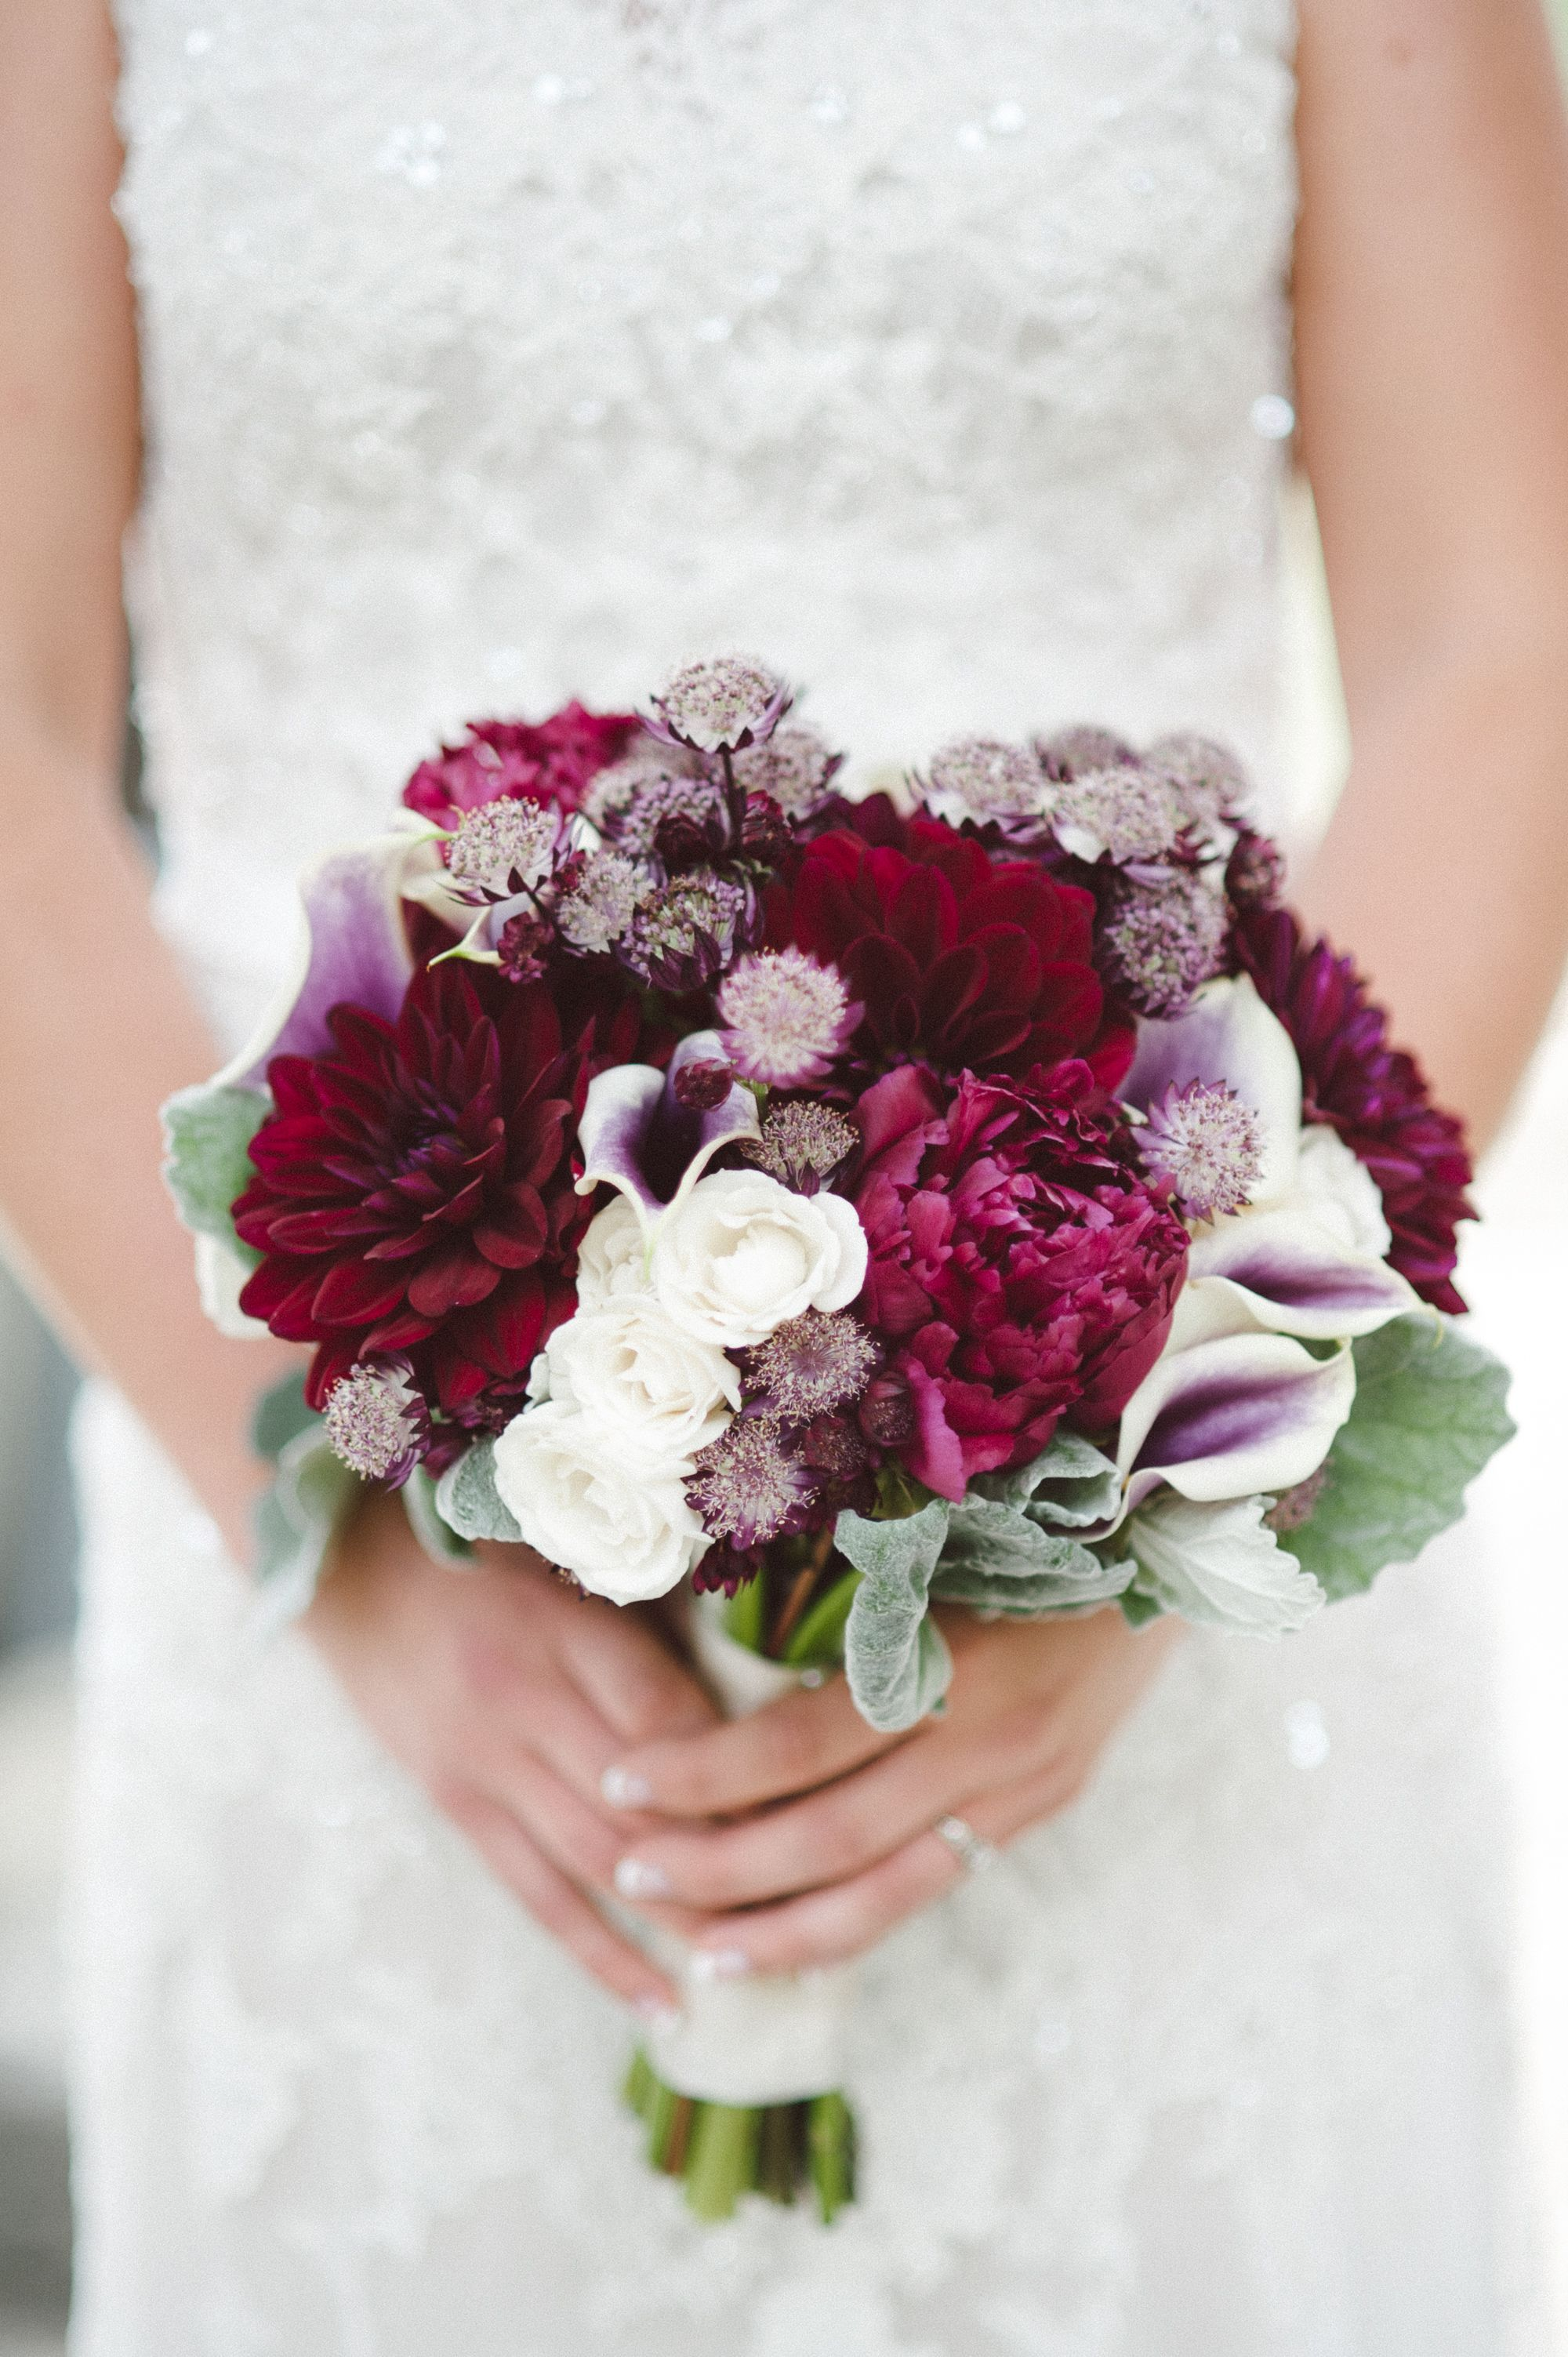 Burgundy and white flower bouquet flowers pinterest flower burgundy and white flower bouquet mightylinksfo